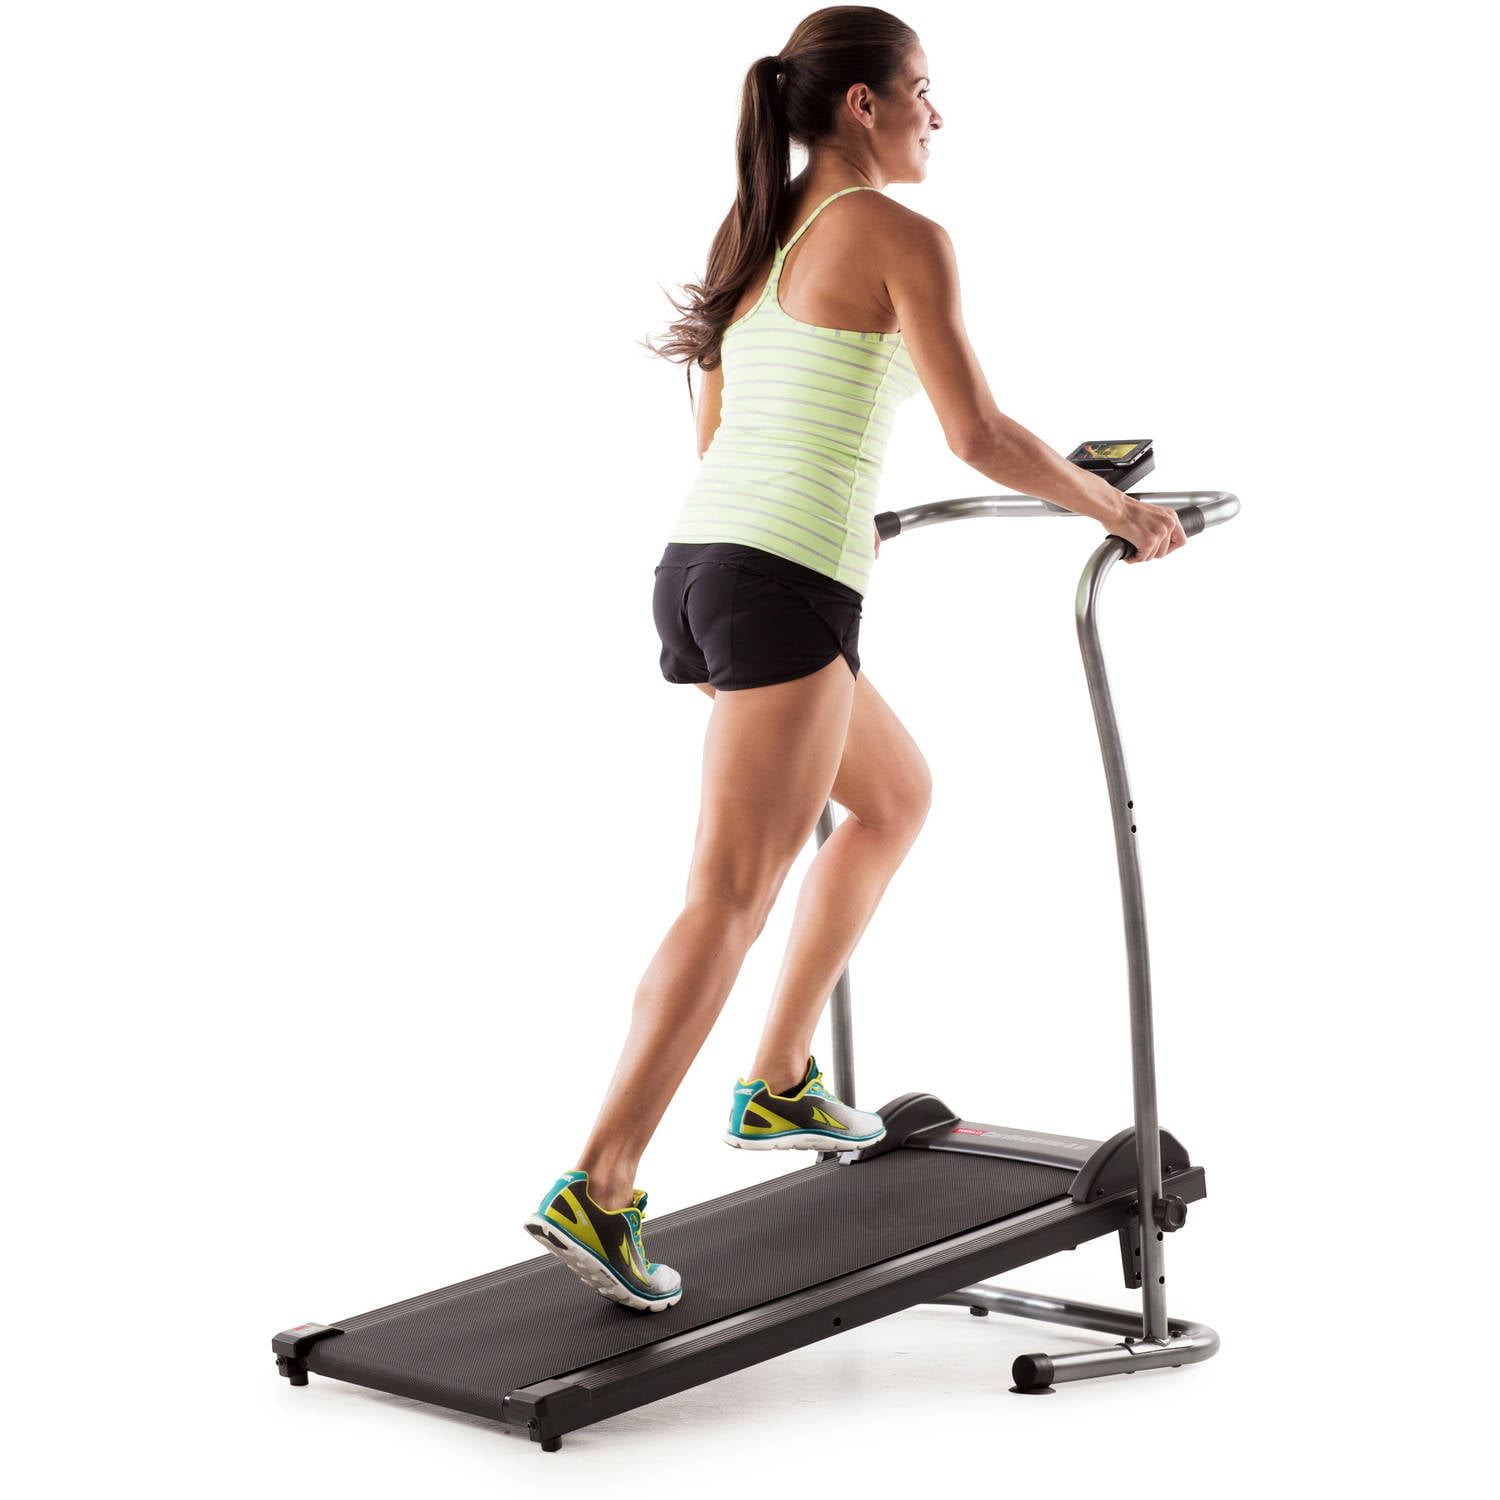 Weslo CardioStride 4.0 Manual Walking Folding Treadmill by Icon Health & Fitness Inc.